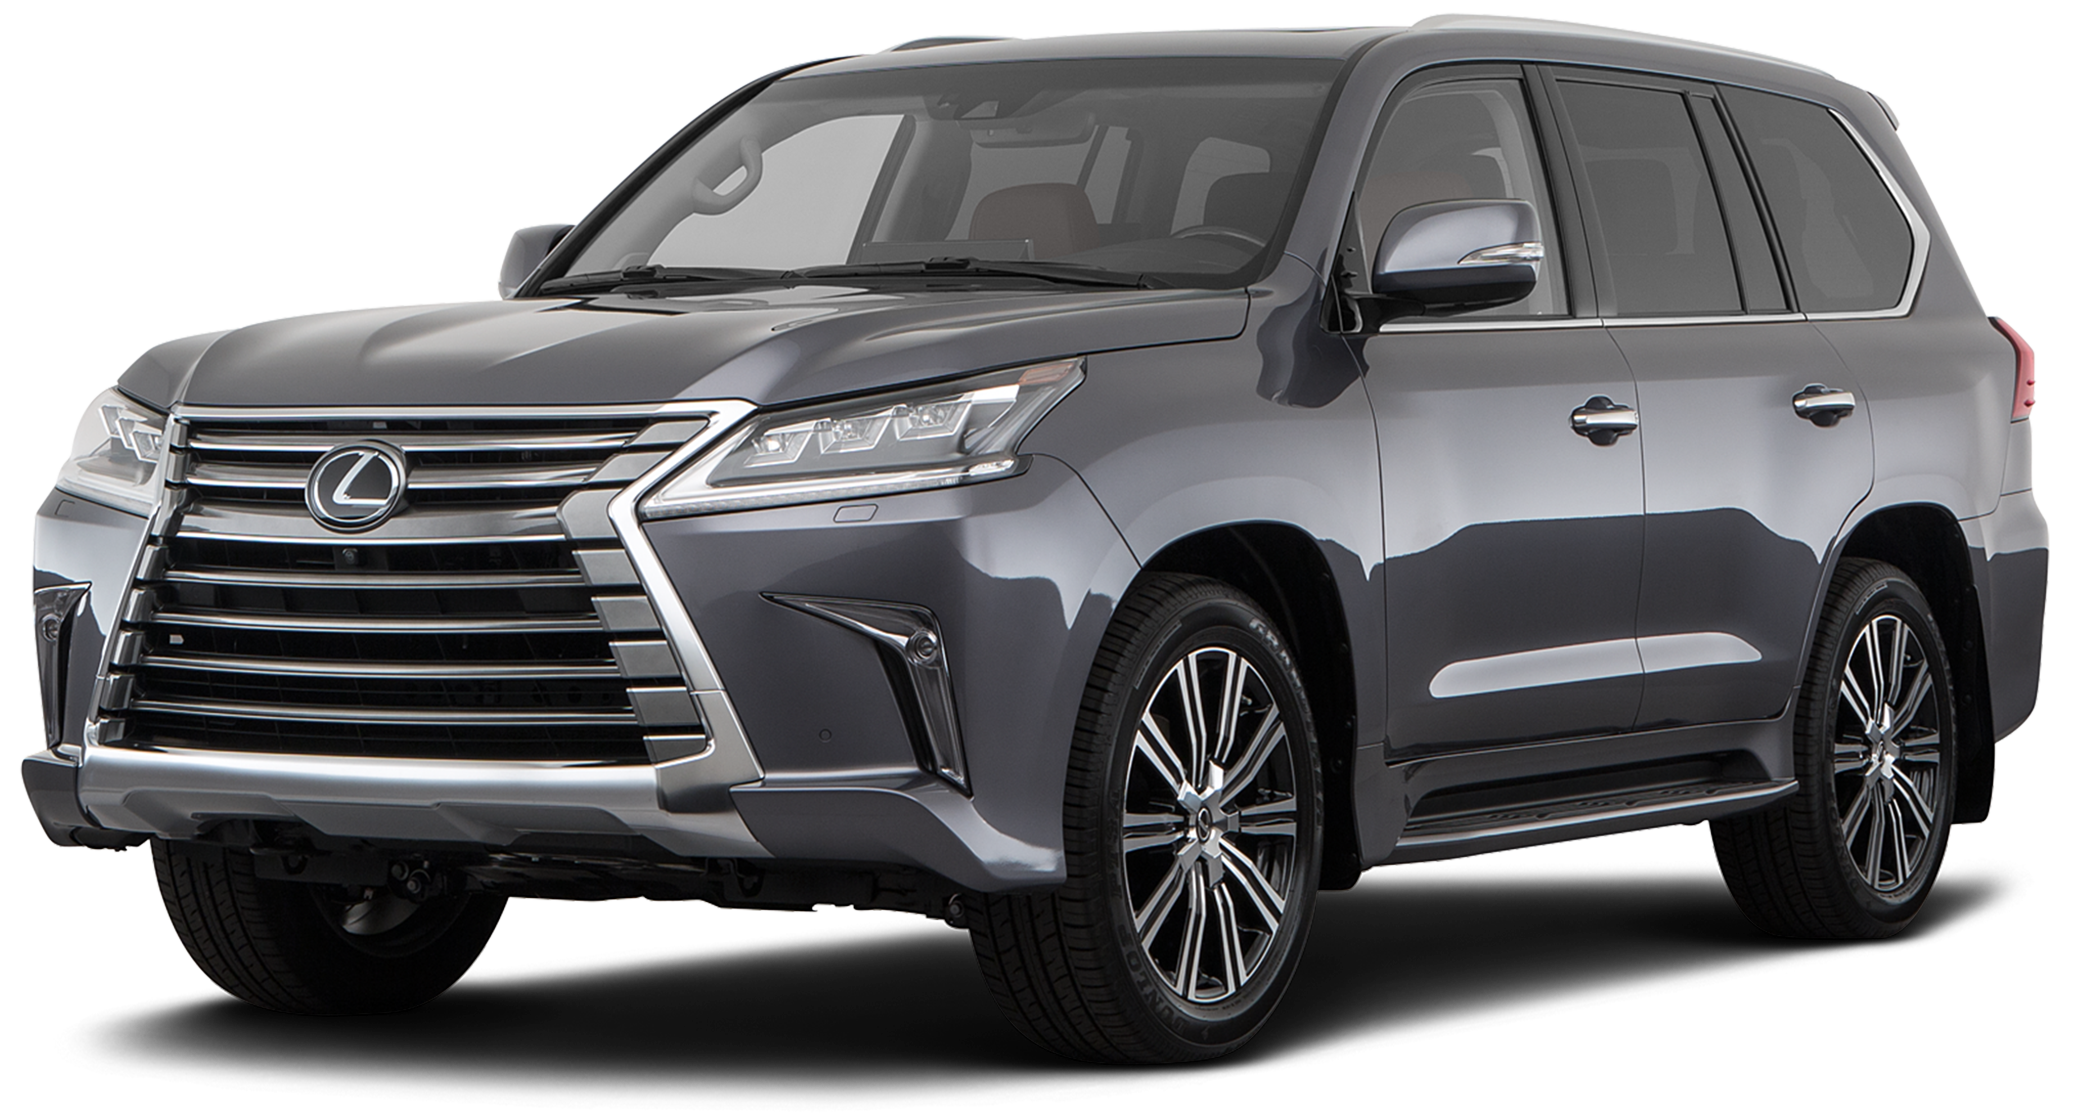 2019 Lexus LX 570 Incentives, Specials & Offers in Melbourne FL